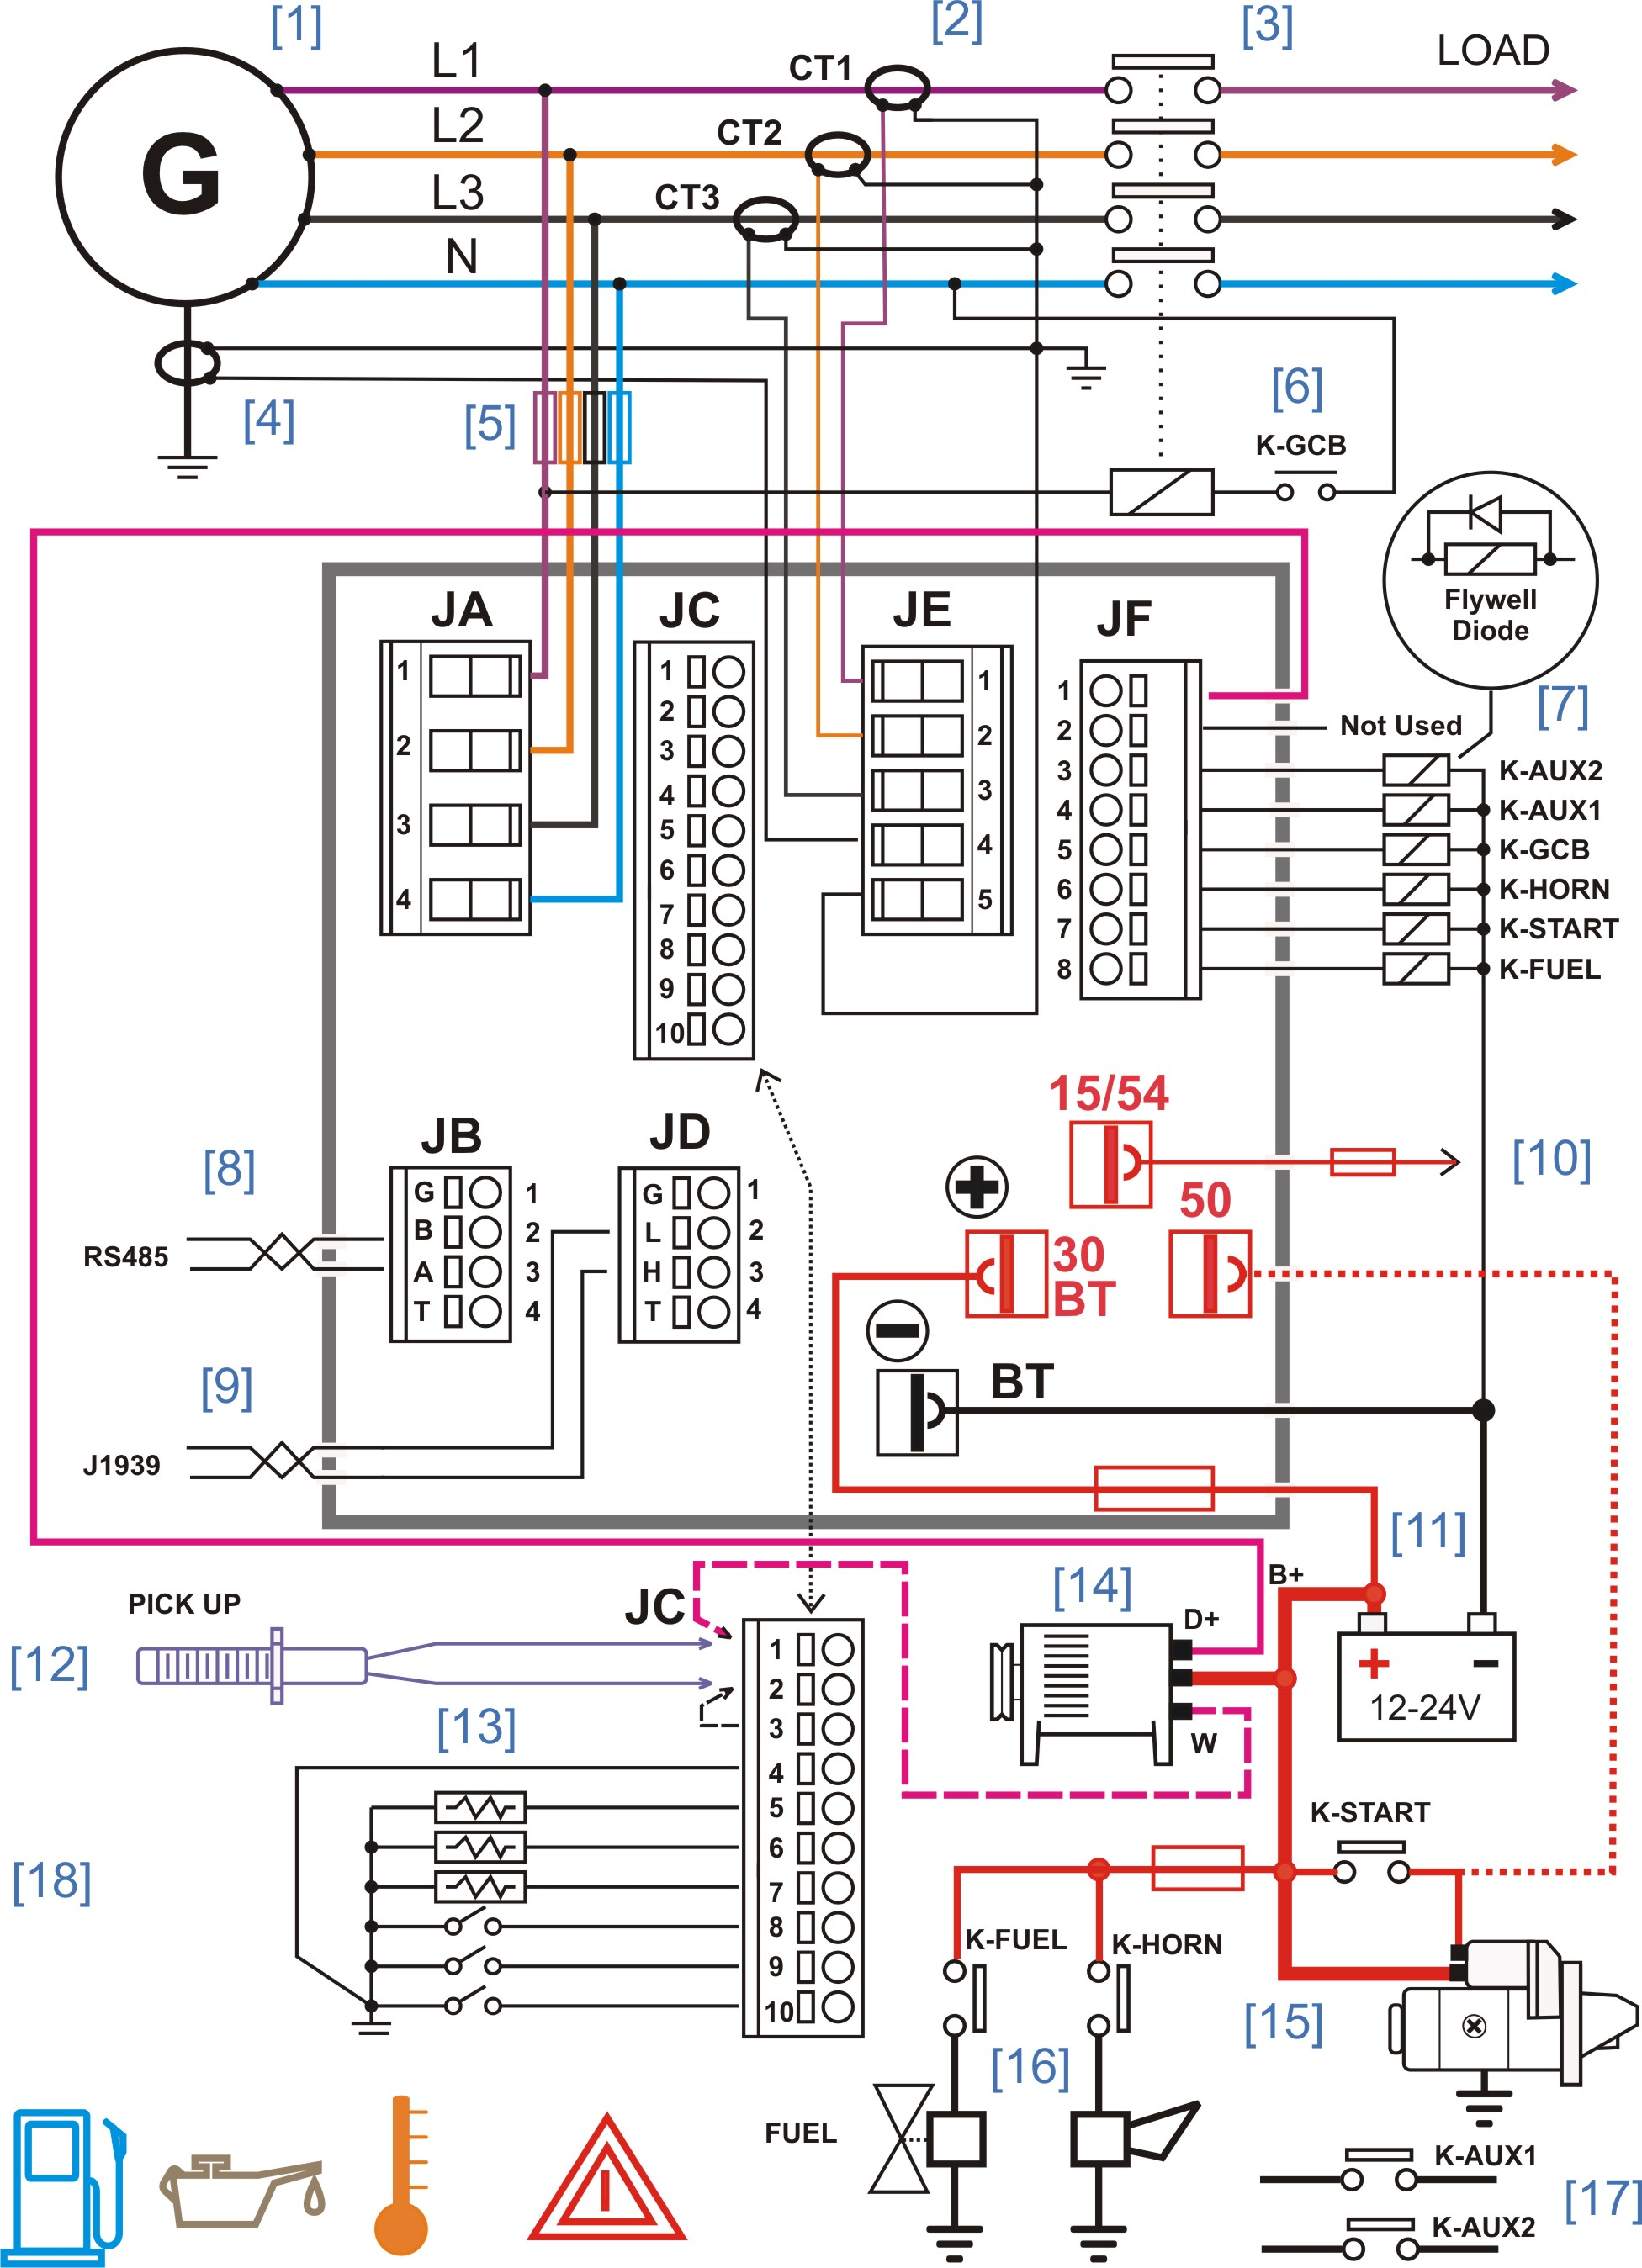 Free Electrical Wiring Diagrams : Home wiring diagrams for electrical panels get free